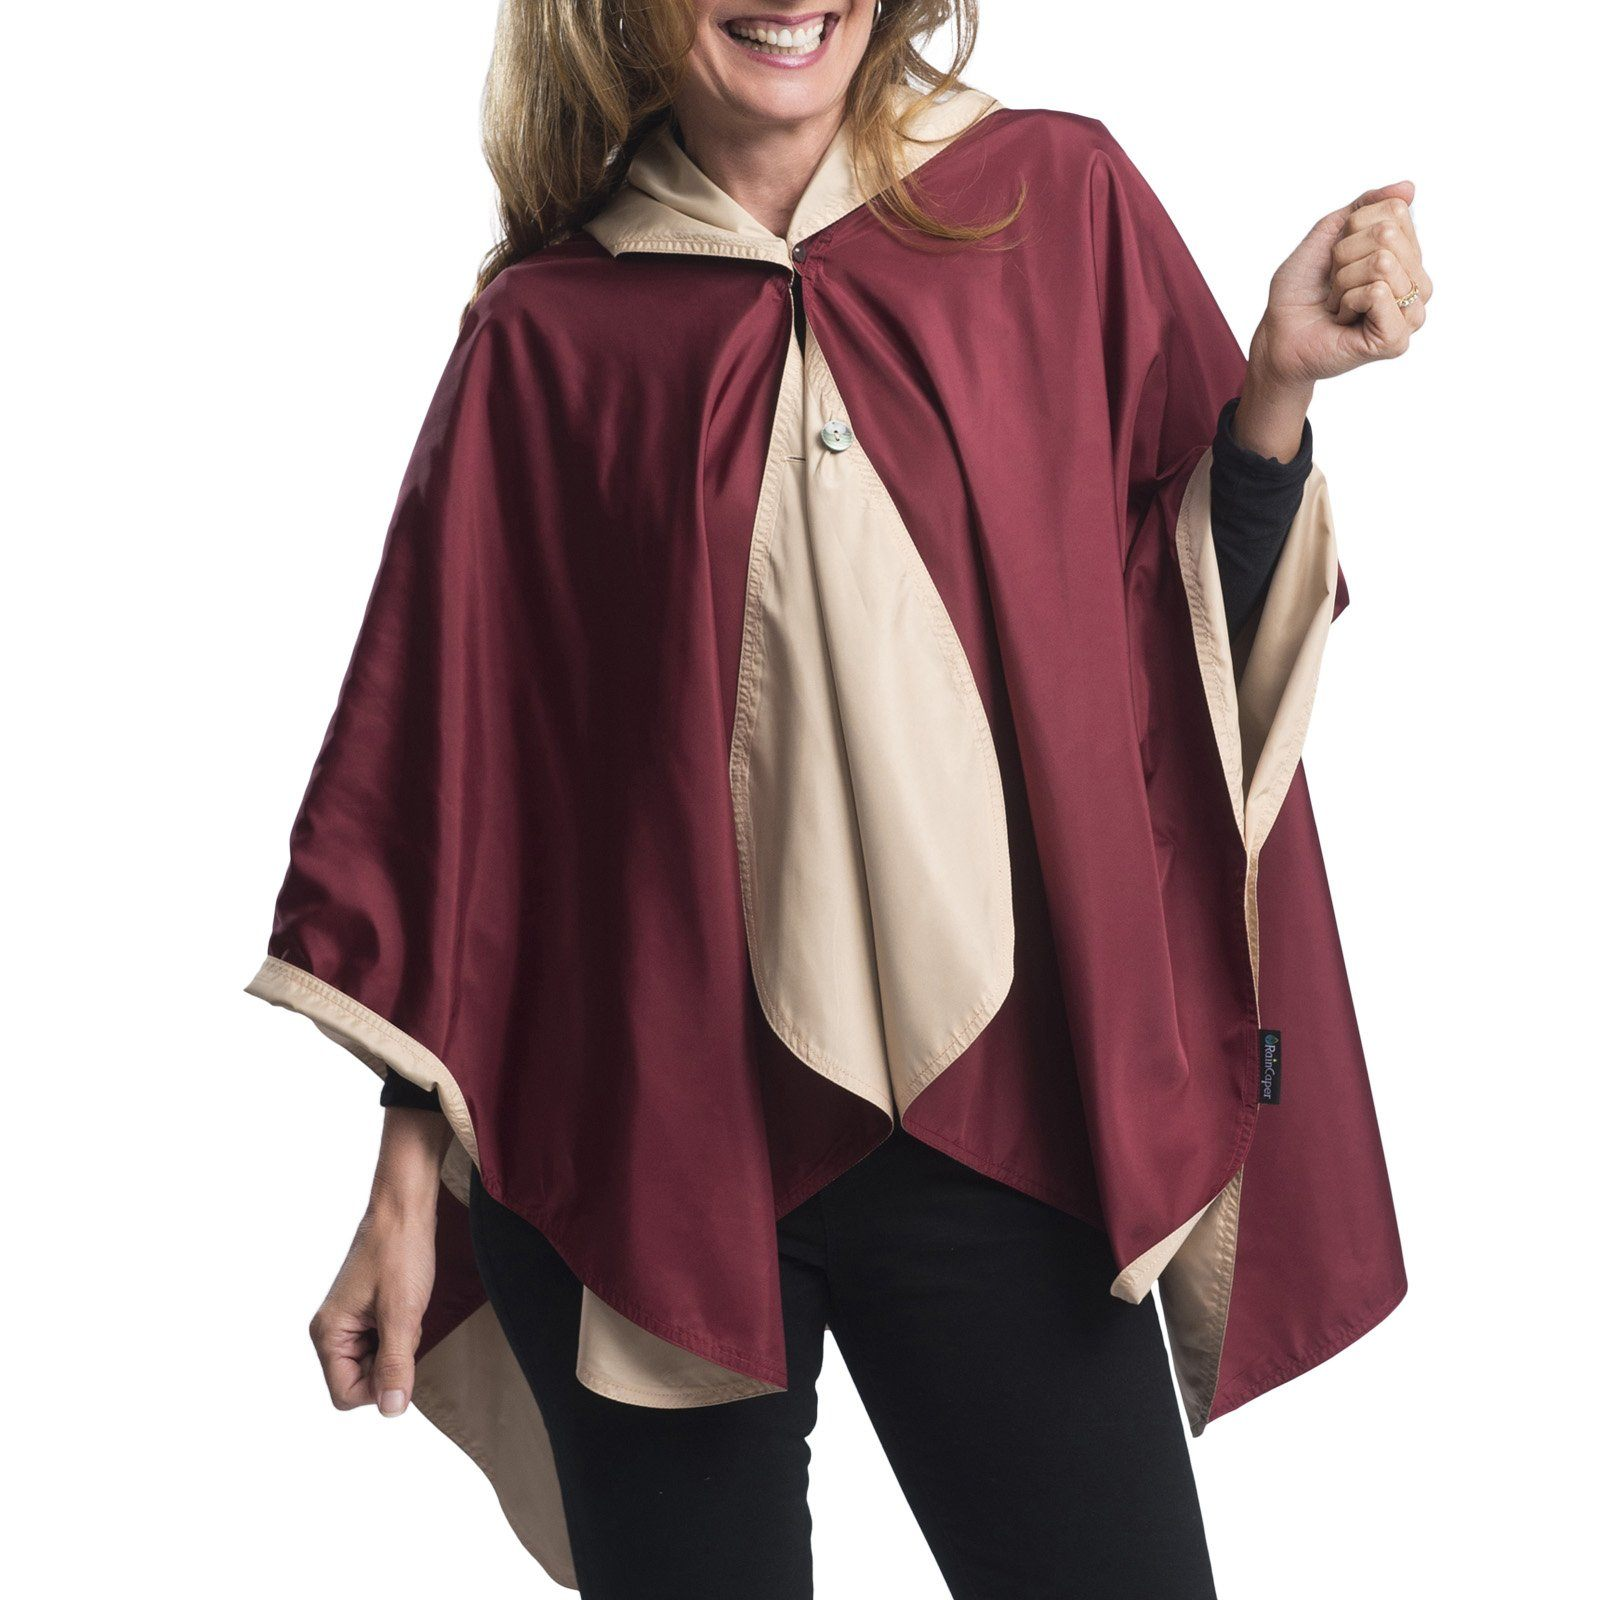 SpiritCaper Garnet & Gold Wind & Rainproof Cape